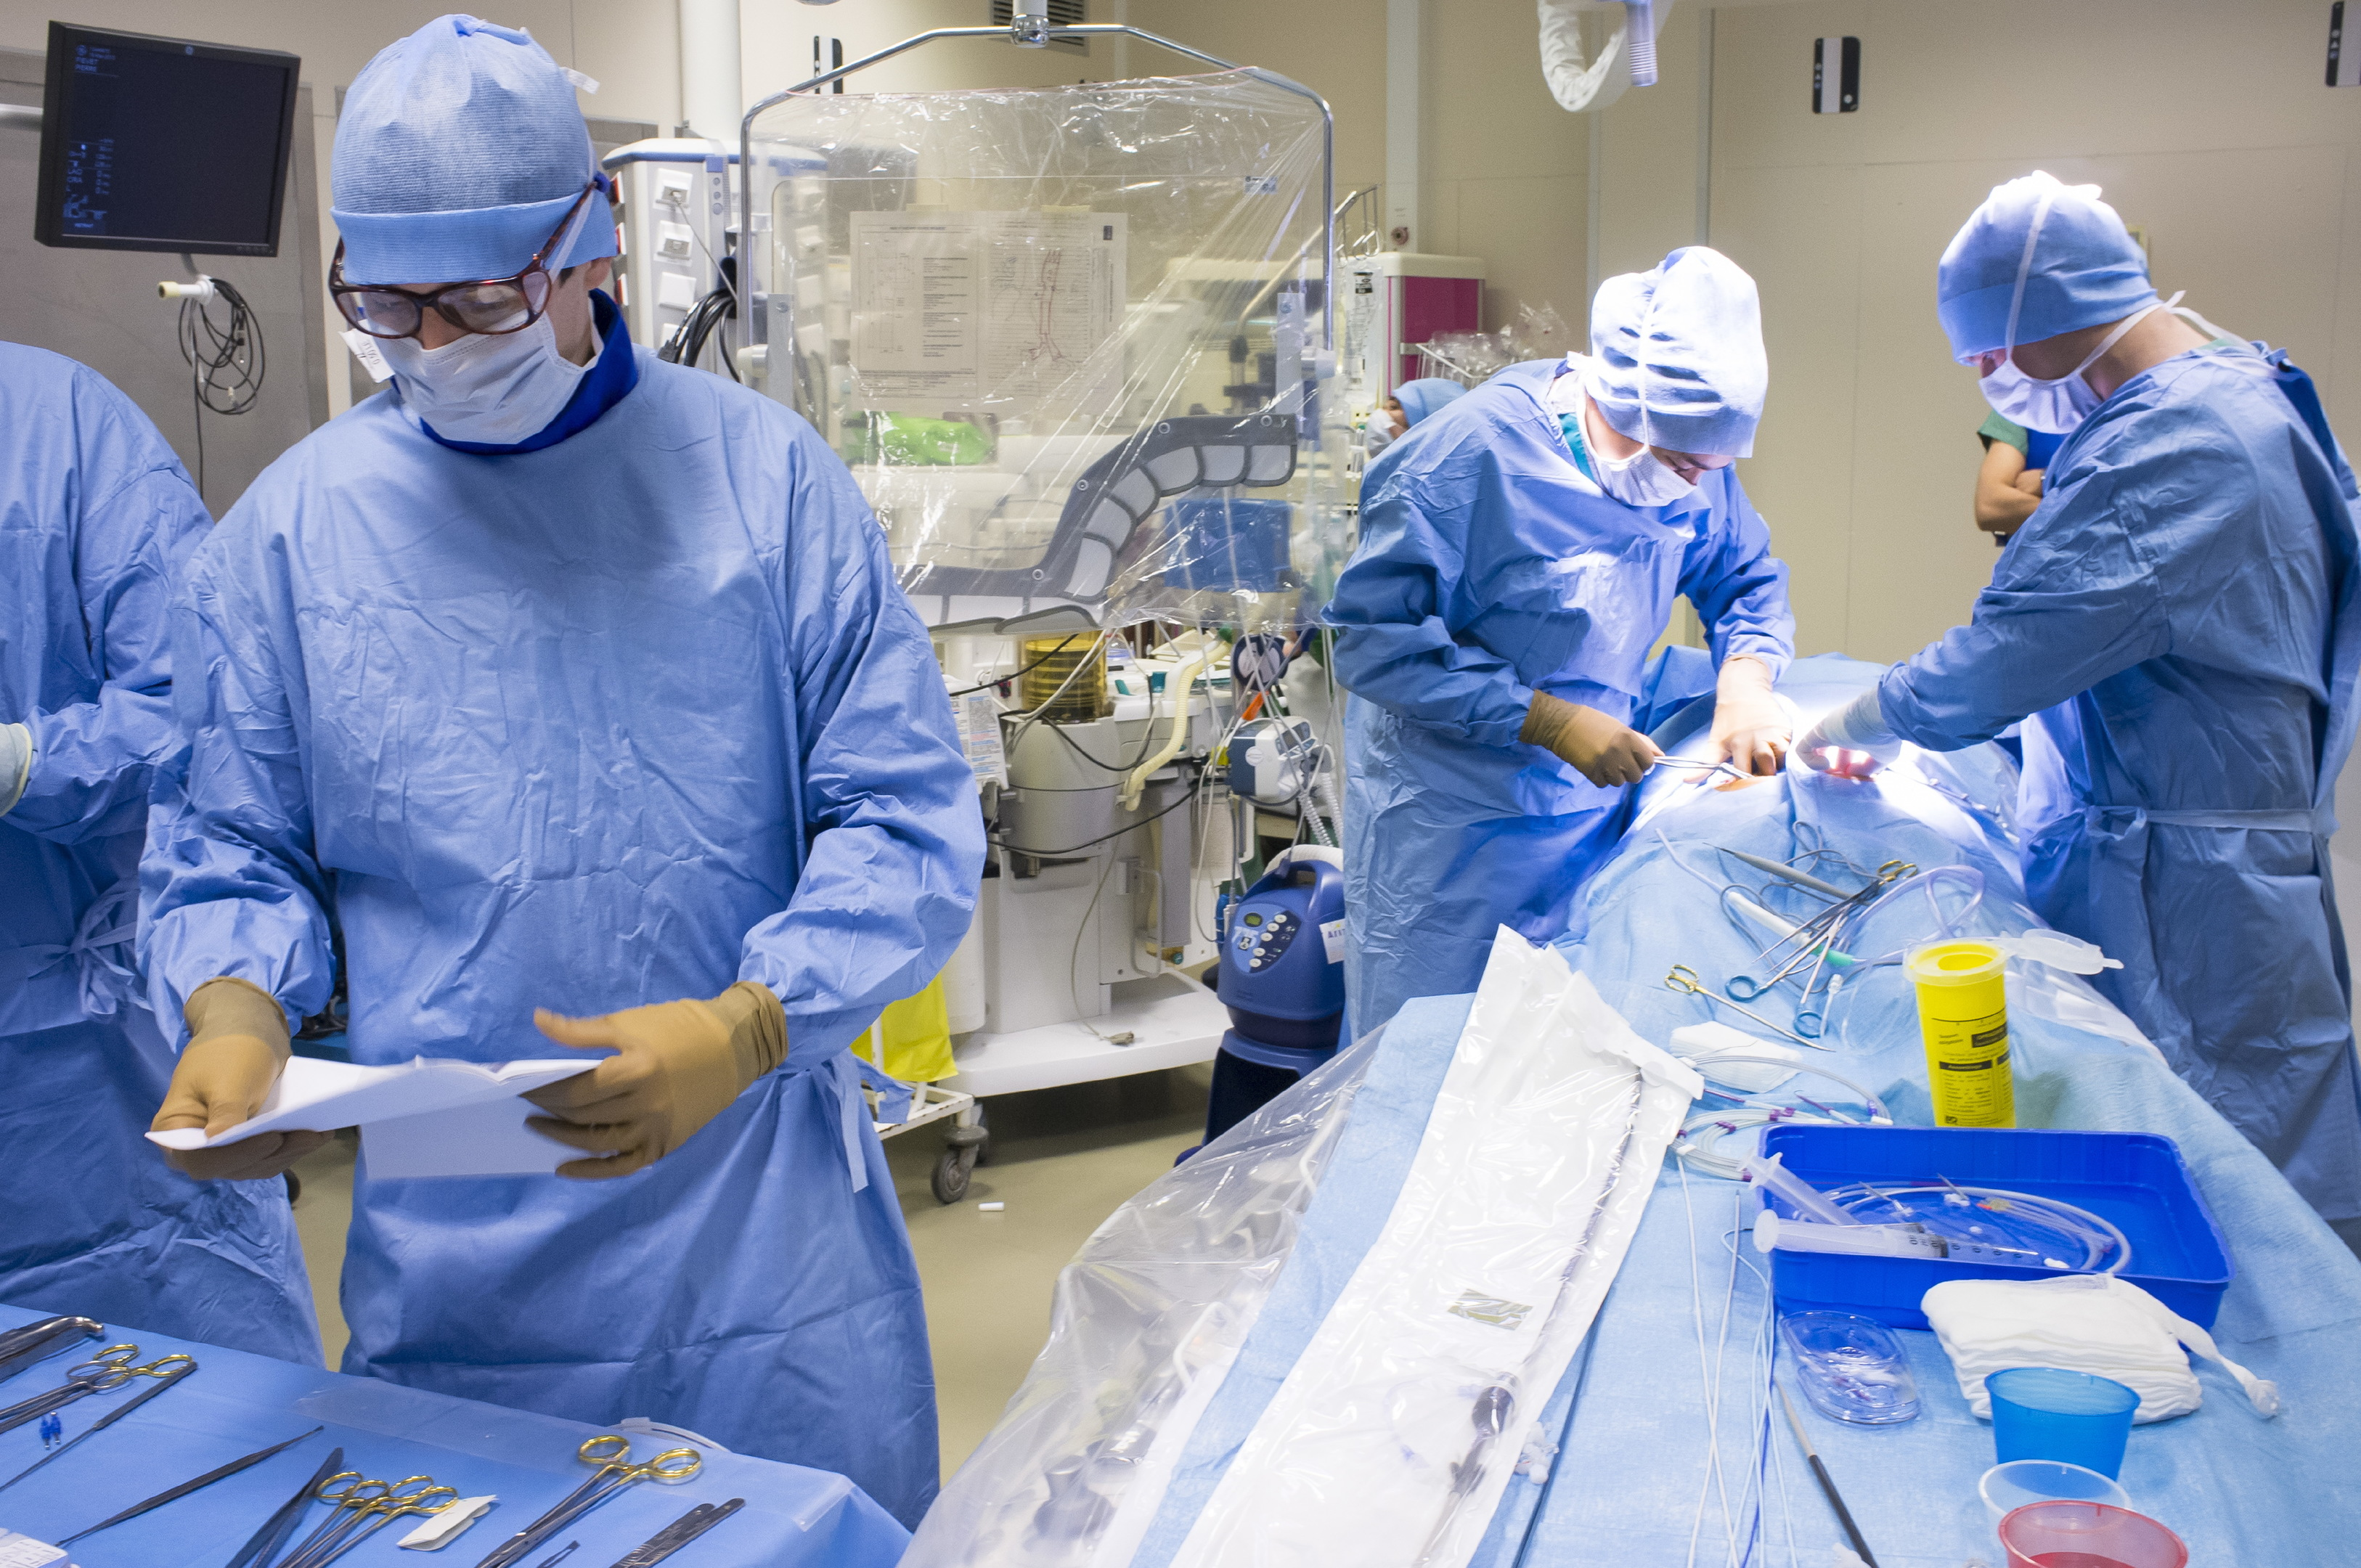 Hybrid cardiac surgery (BSIP/UIG via Getty Images)